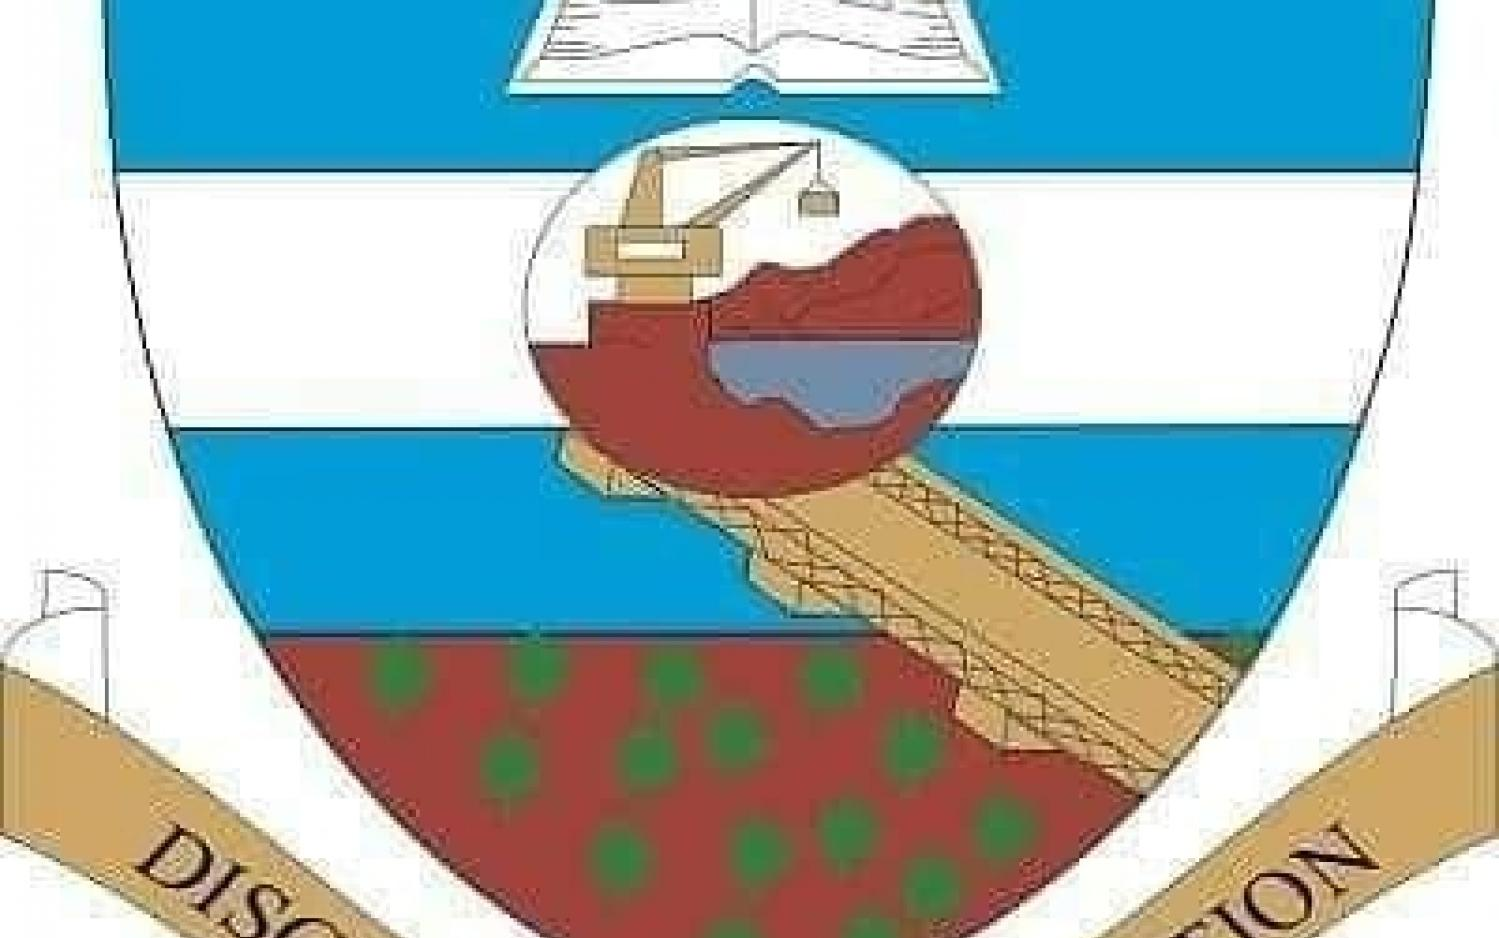 Unijos Rejoinder On Newspaper Publications By Vanguard and Guardian Newspapers